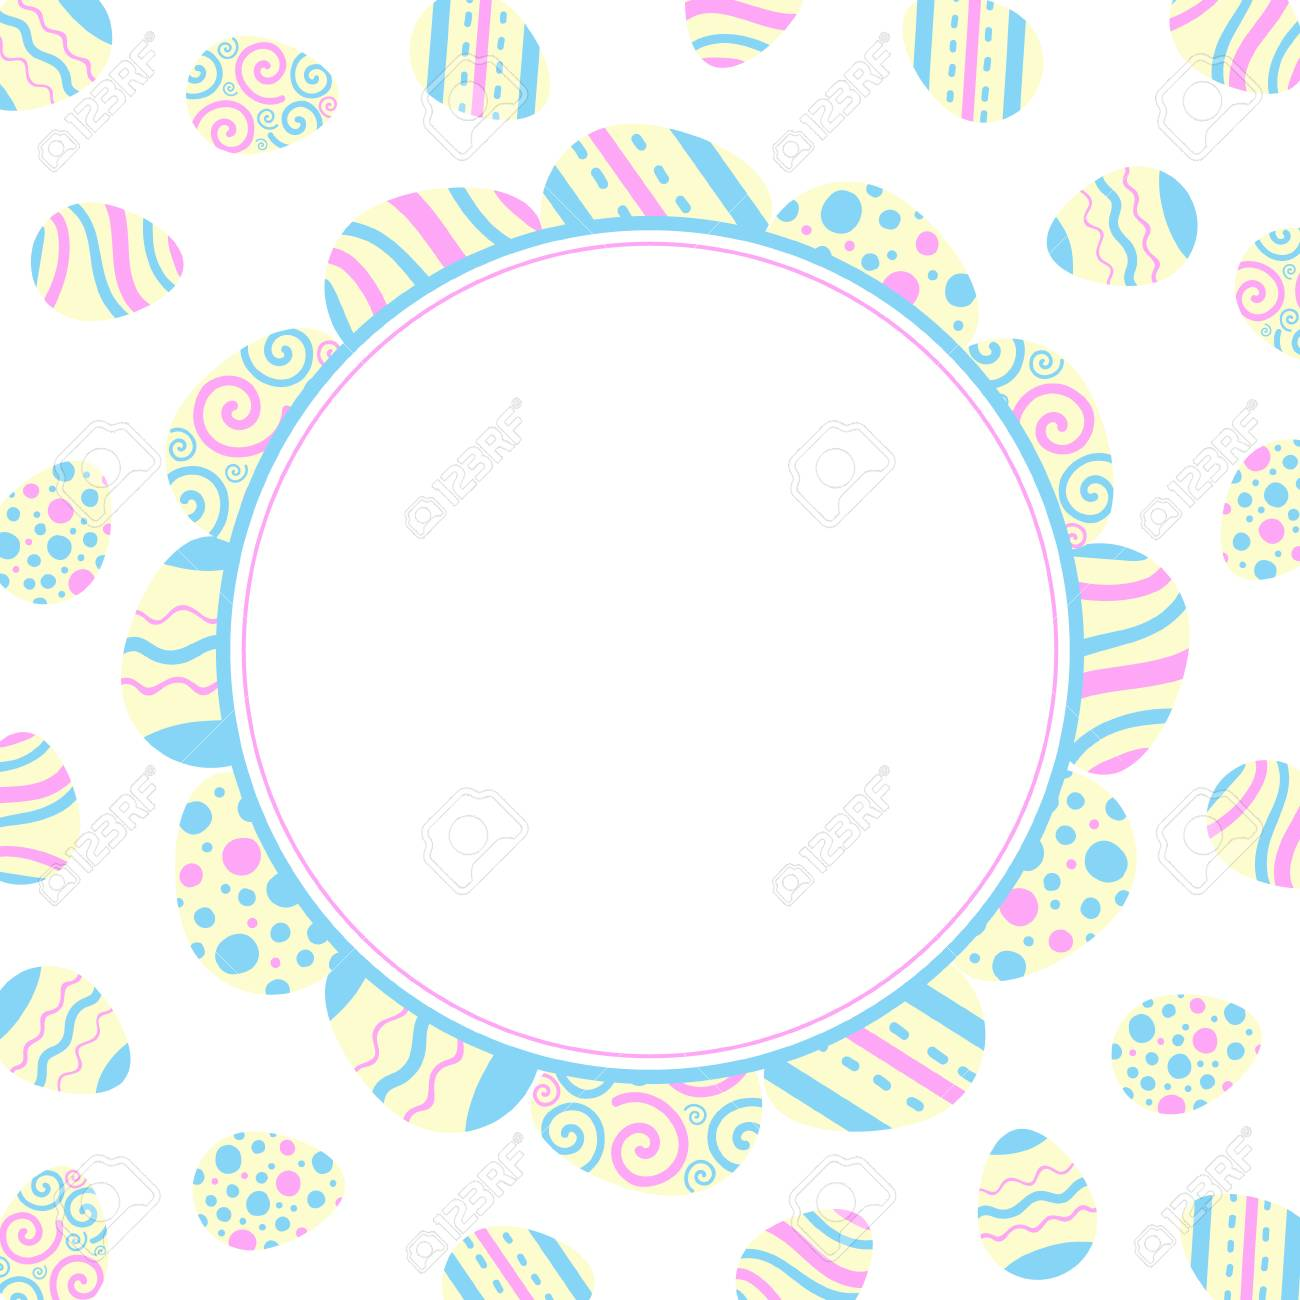 Illustration for scrapbooking. Easter holiday Round frame of colored eggs. Flat design. - 97073709